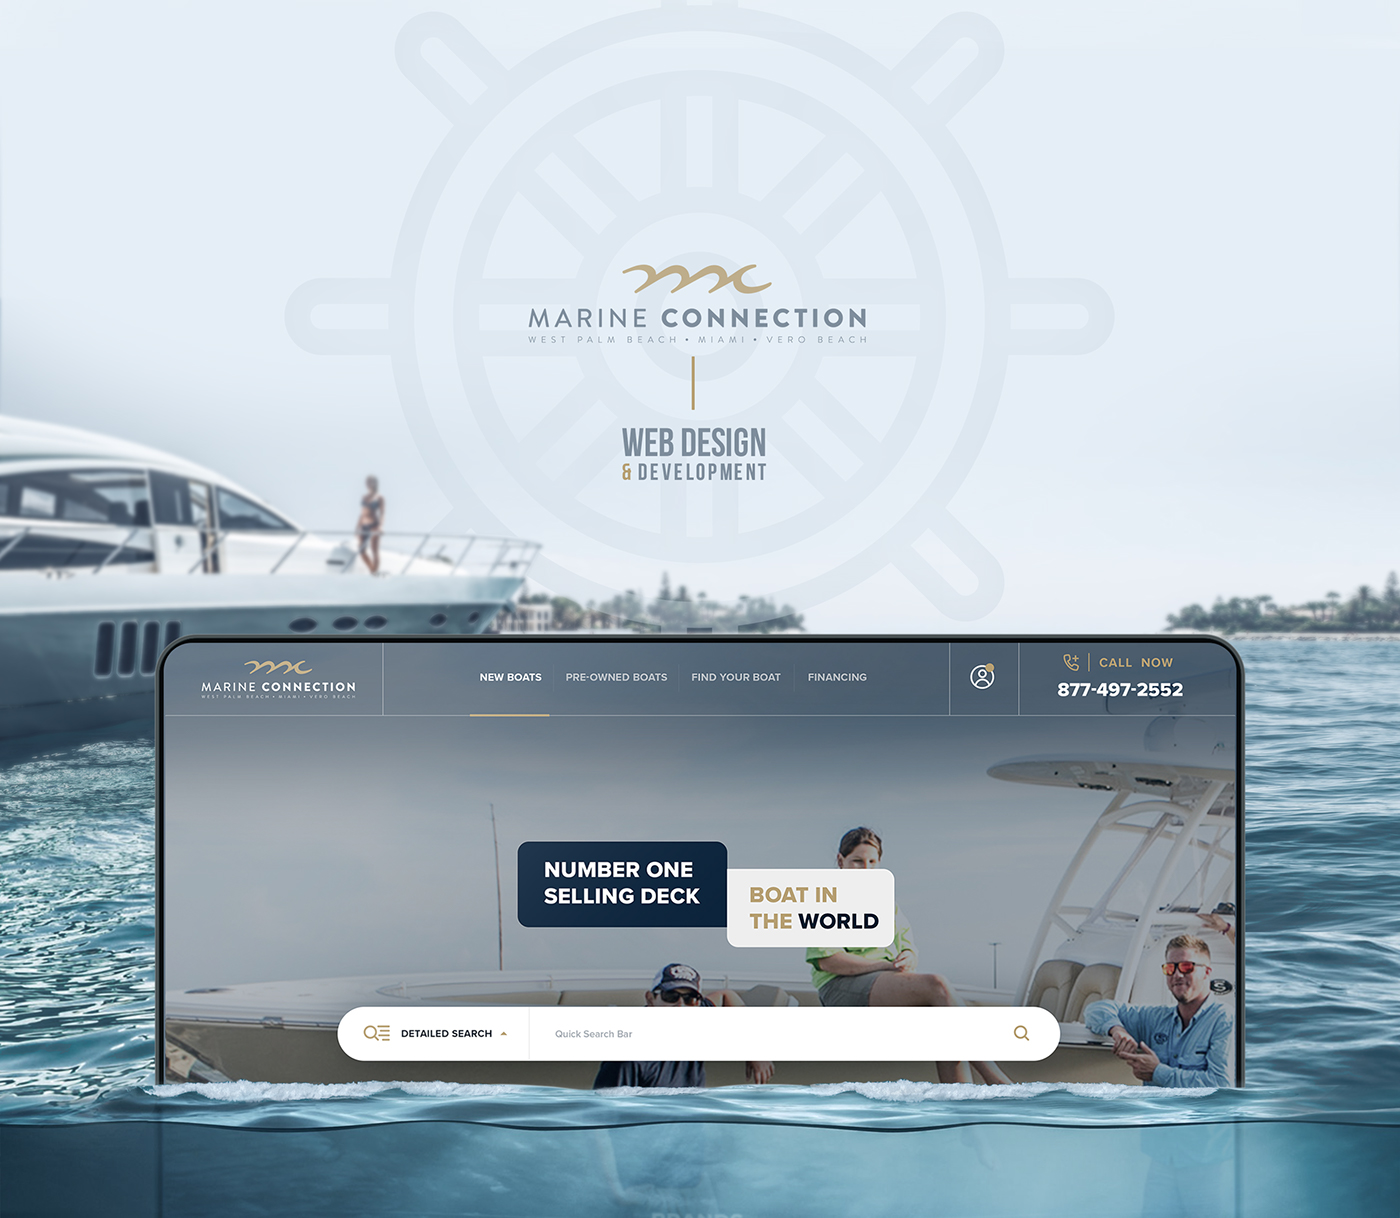 sea ship boat yacht Deluxe luxury Rent marine connection